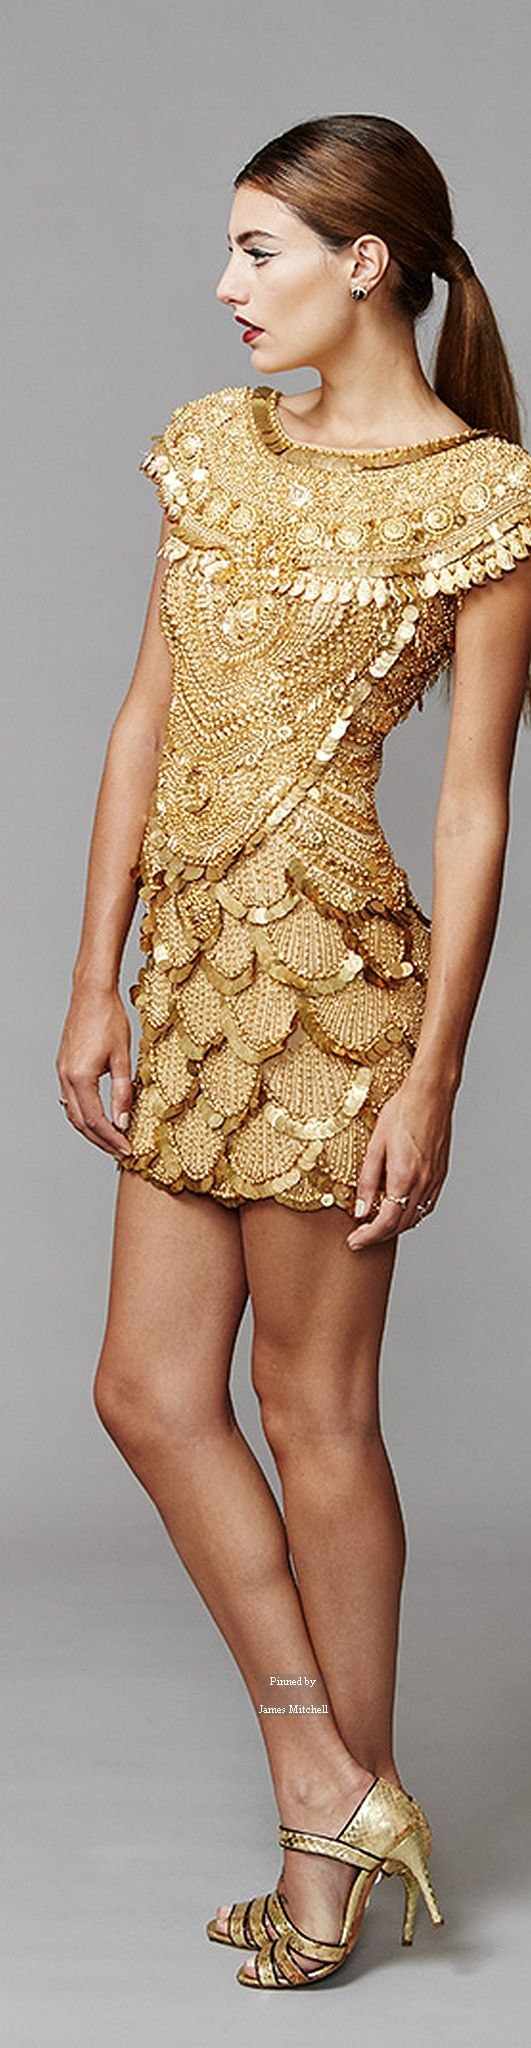 449 best ༺♥༻Gold/Bronze/Copper Fashion༺♥༻ images on ...